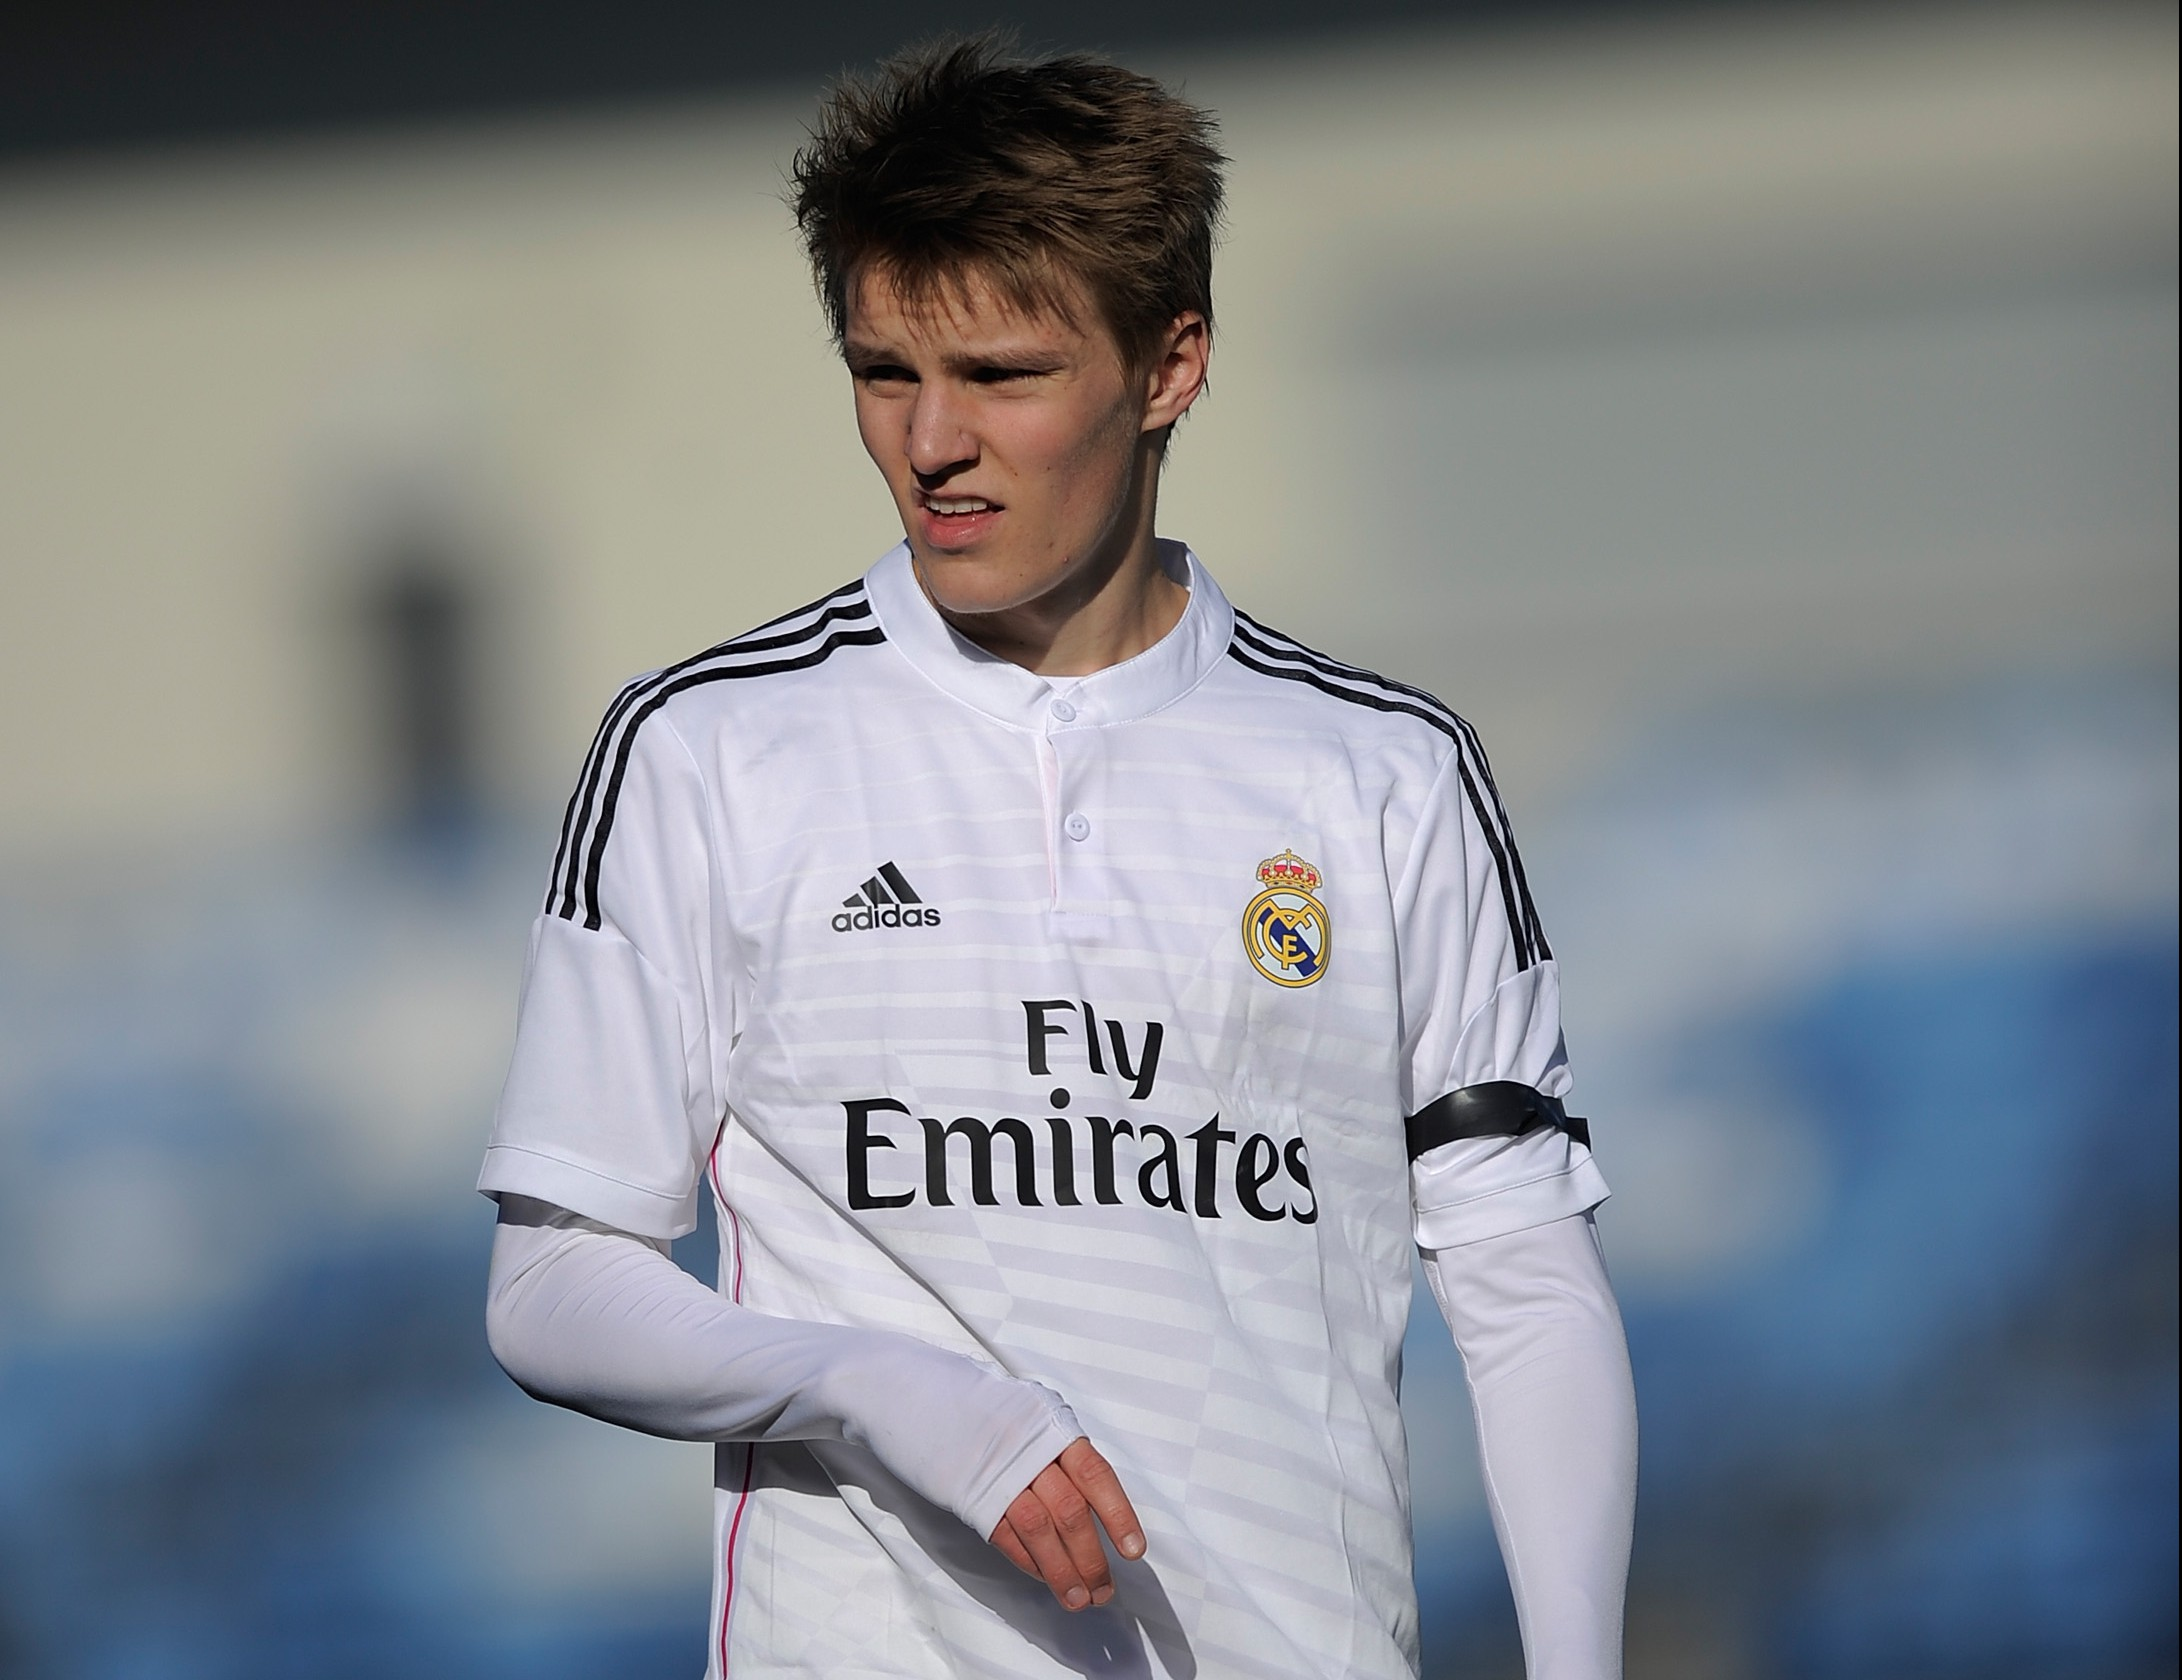 Martin Odegaard 'refuses to train at Real Madrid', transfer has gone sour